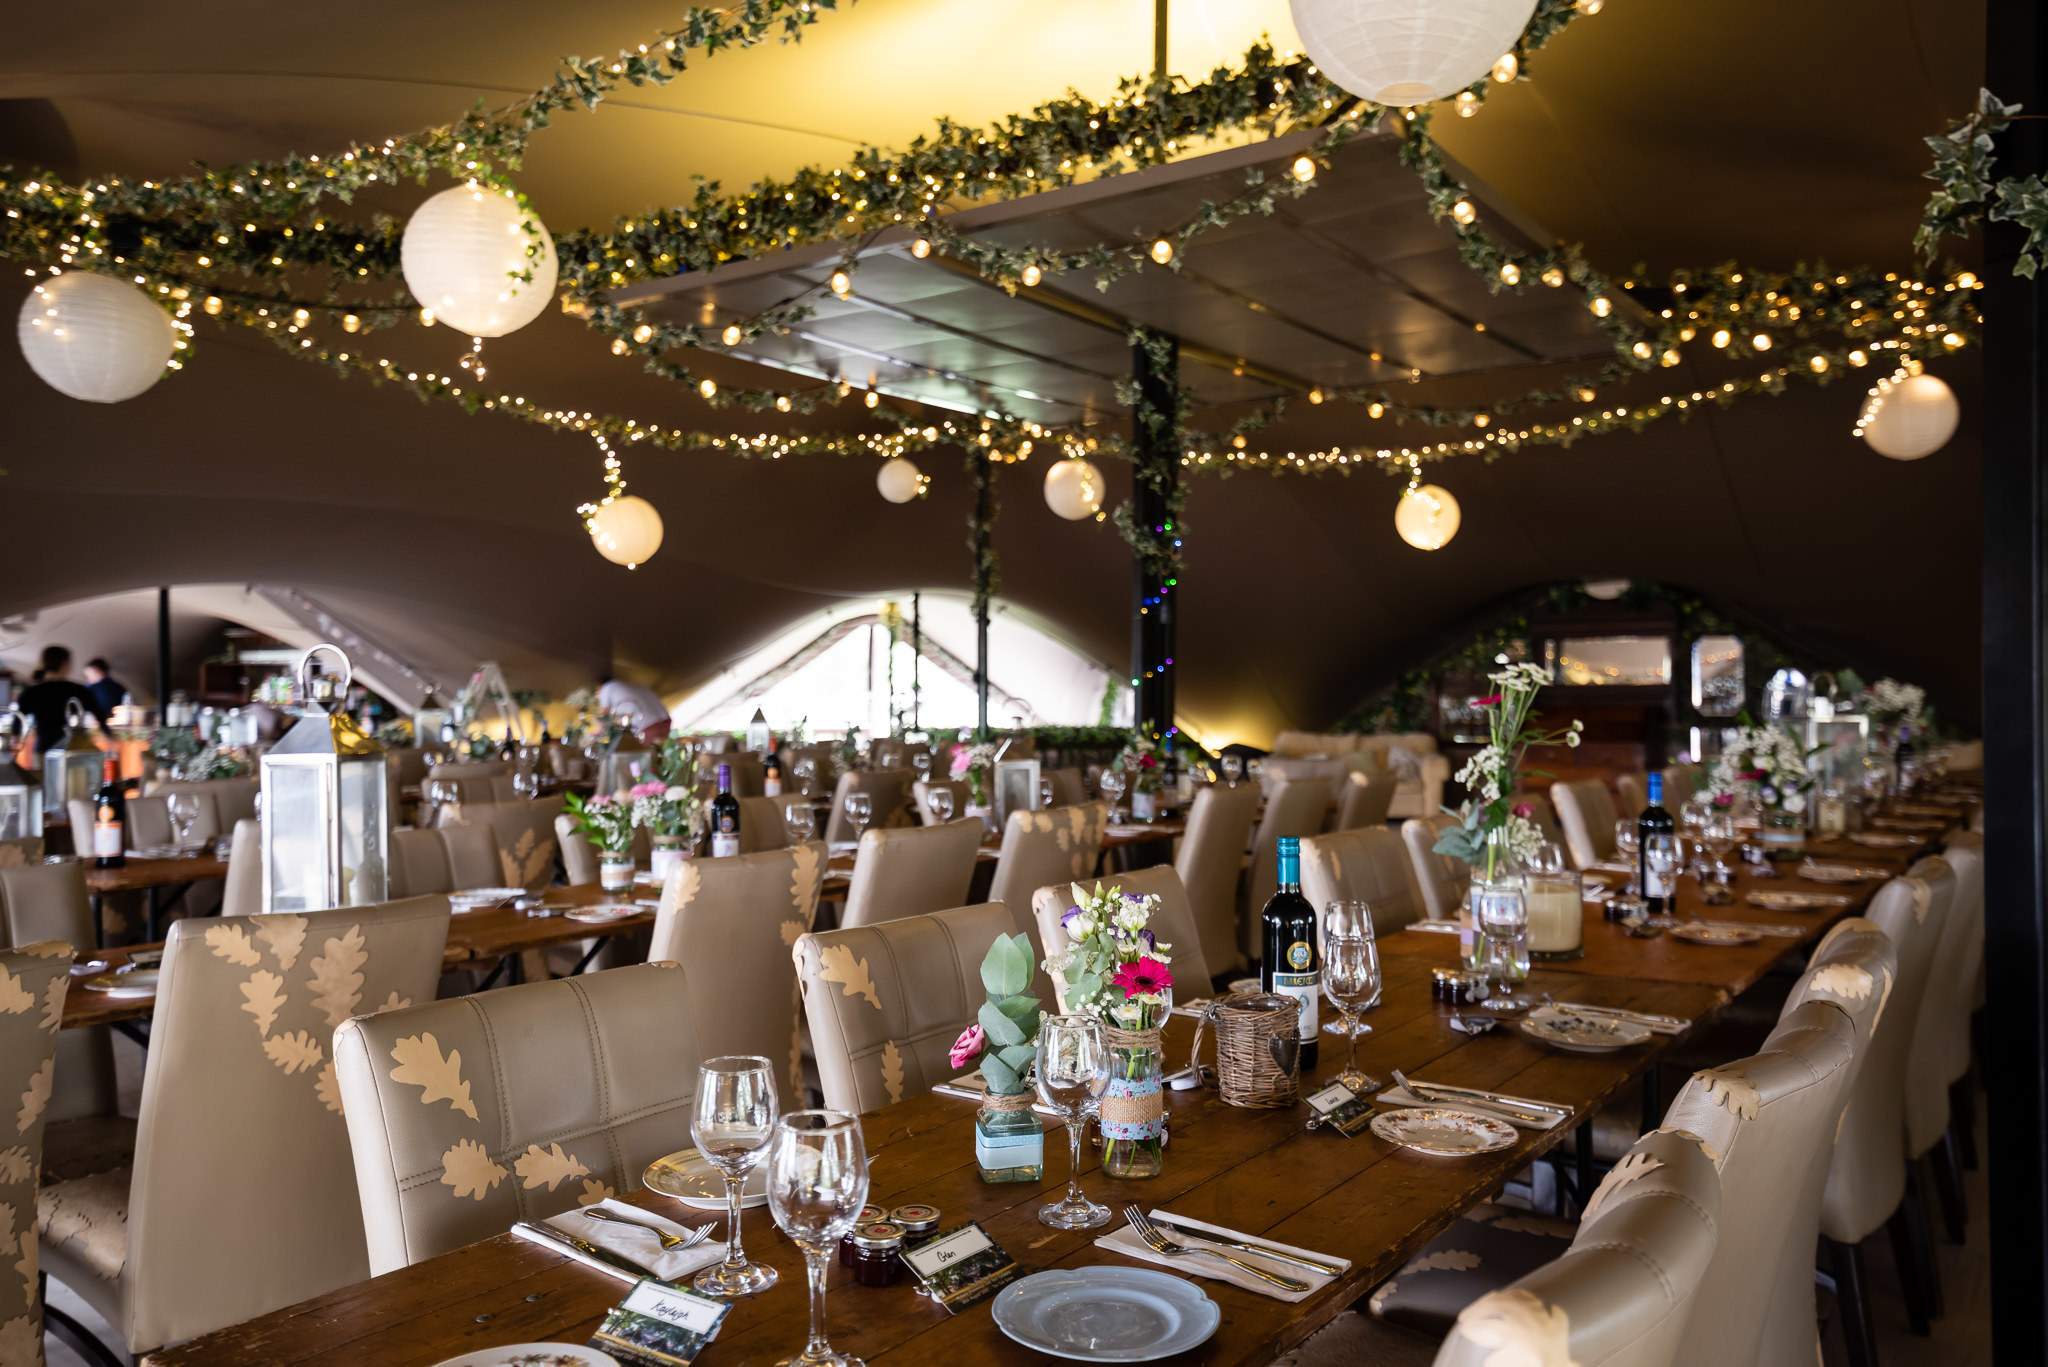 The stretch tent decorated for wedding breakfast